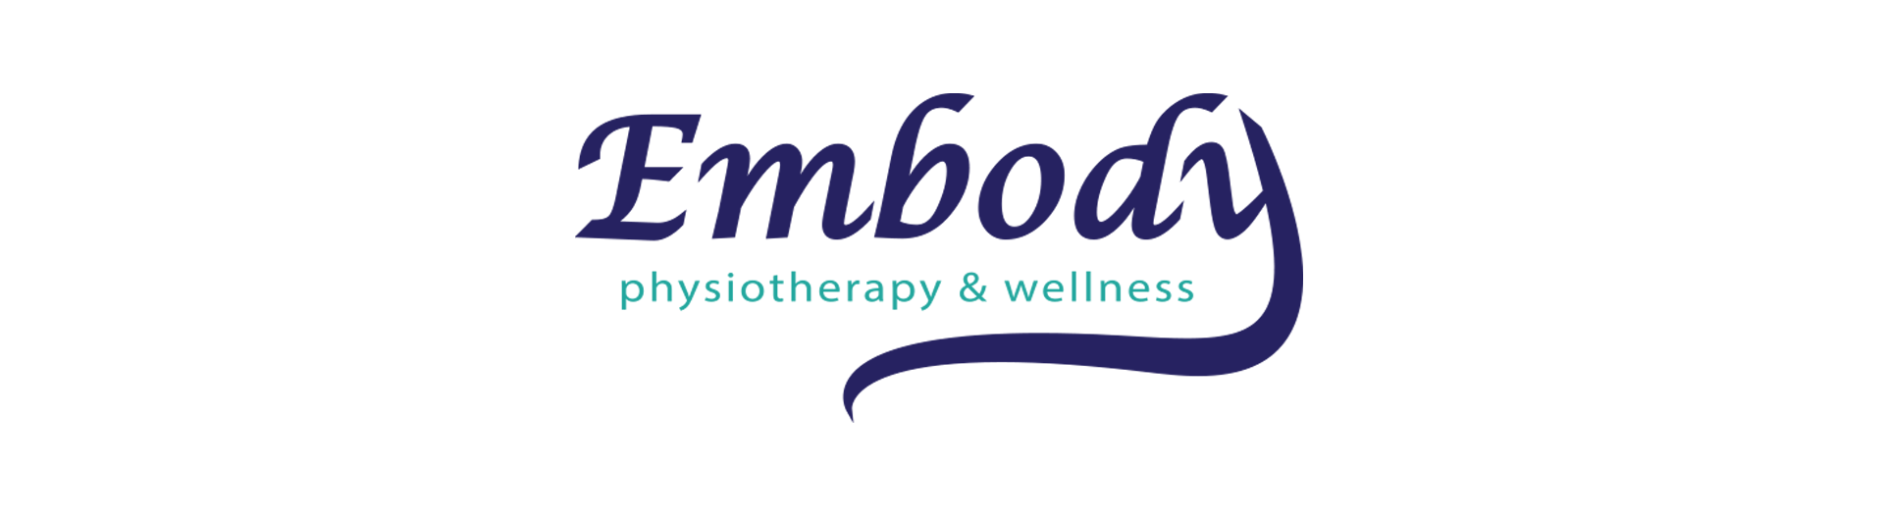 Embody Physiotherapy & Wellness